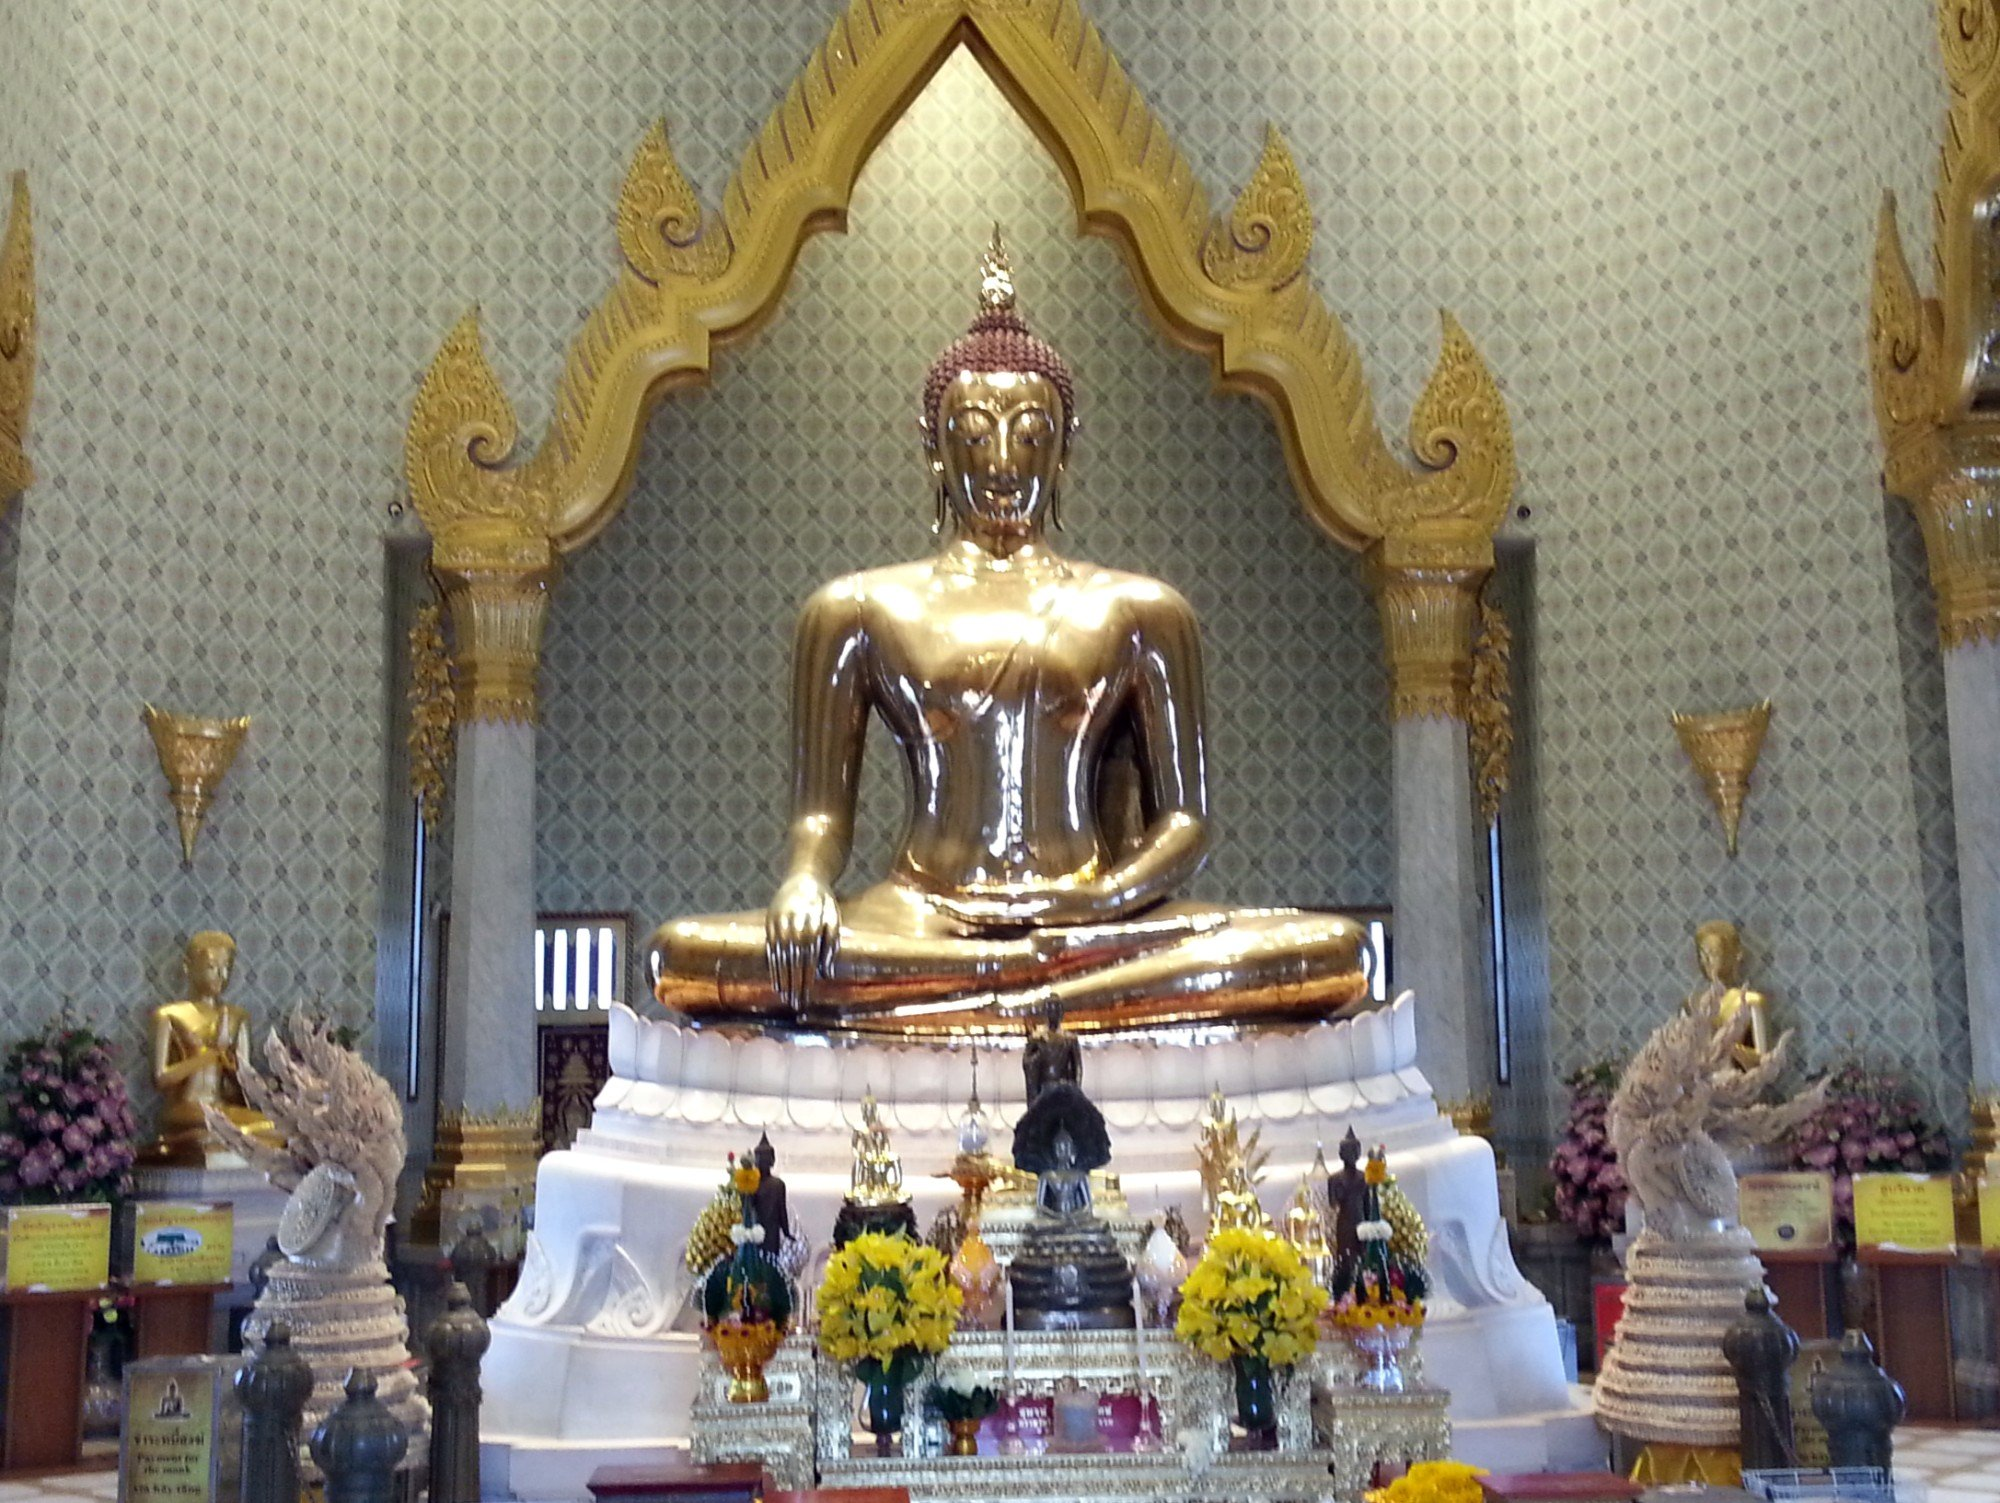 Phra Phuttha Maha Suwan Patimakon at Wat Traimit